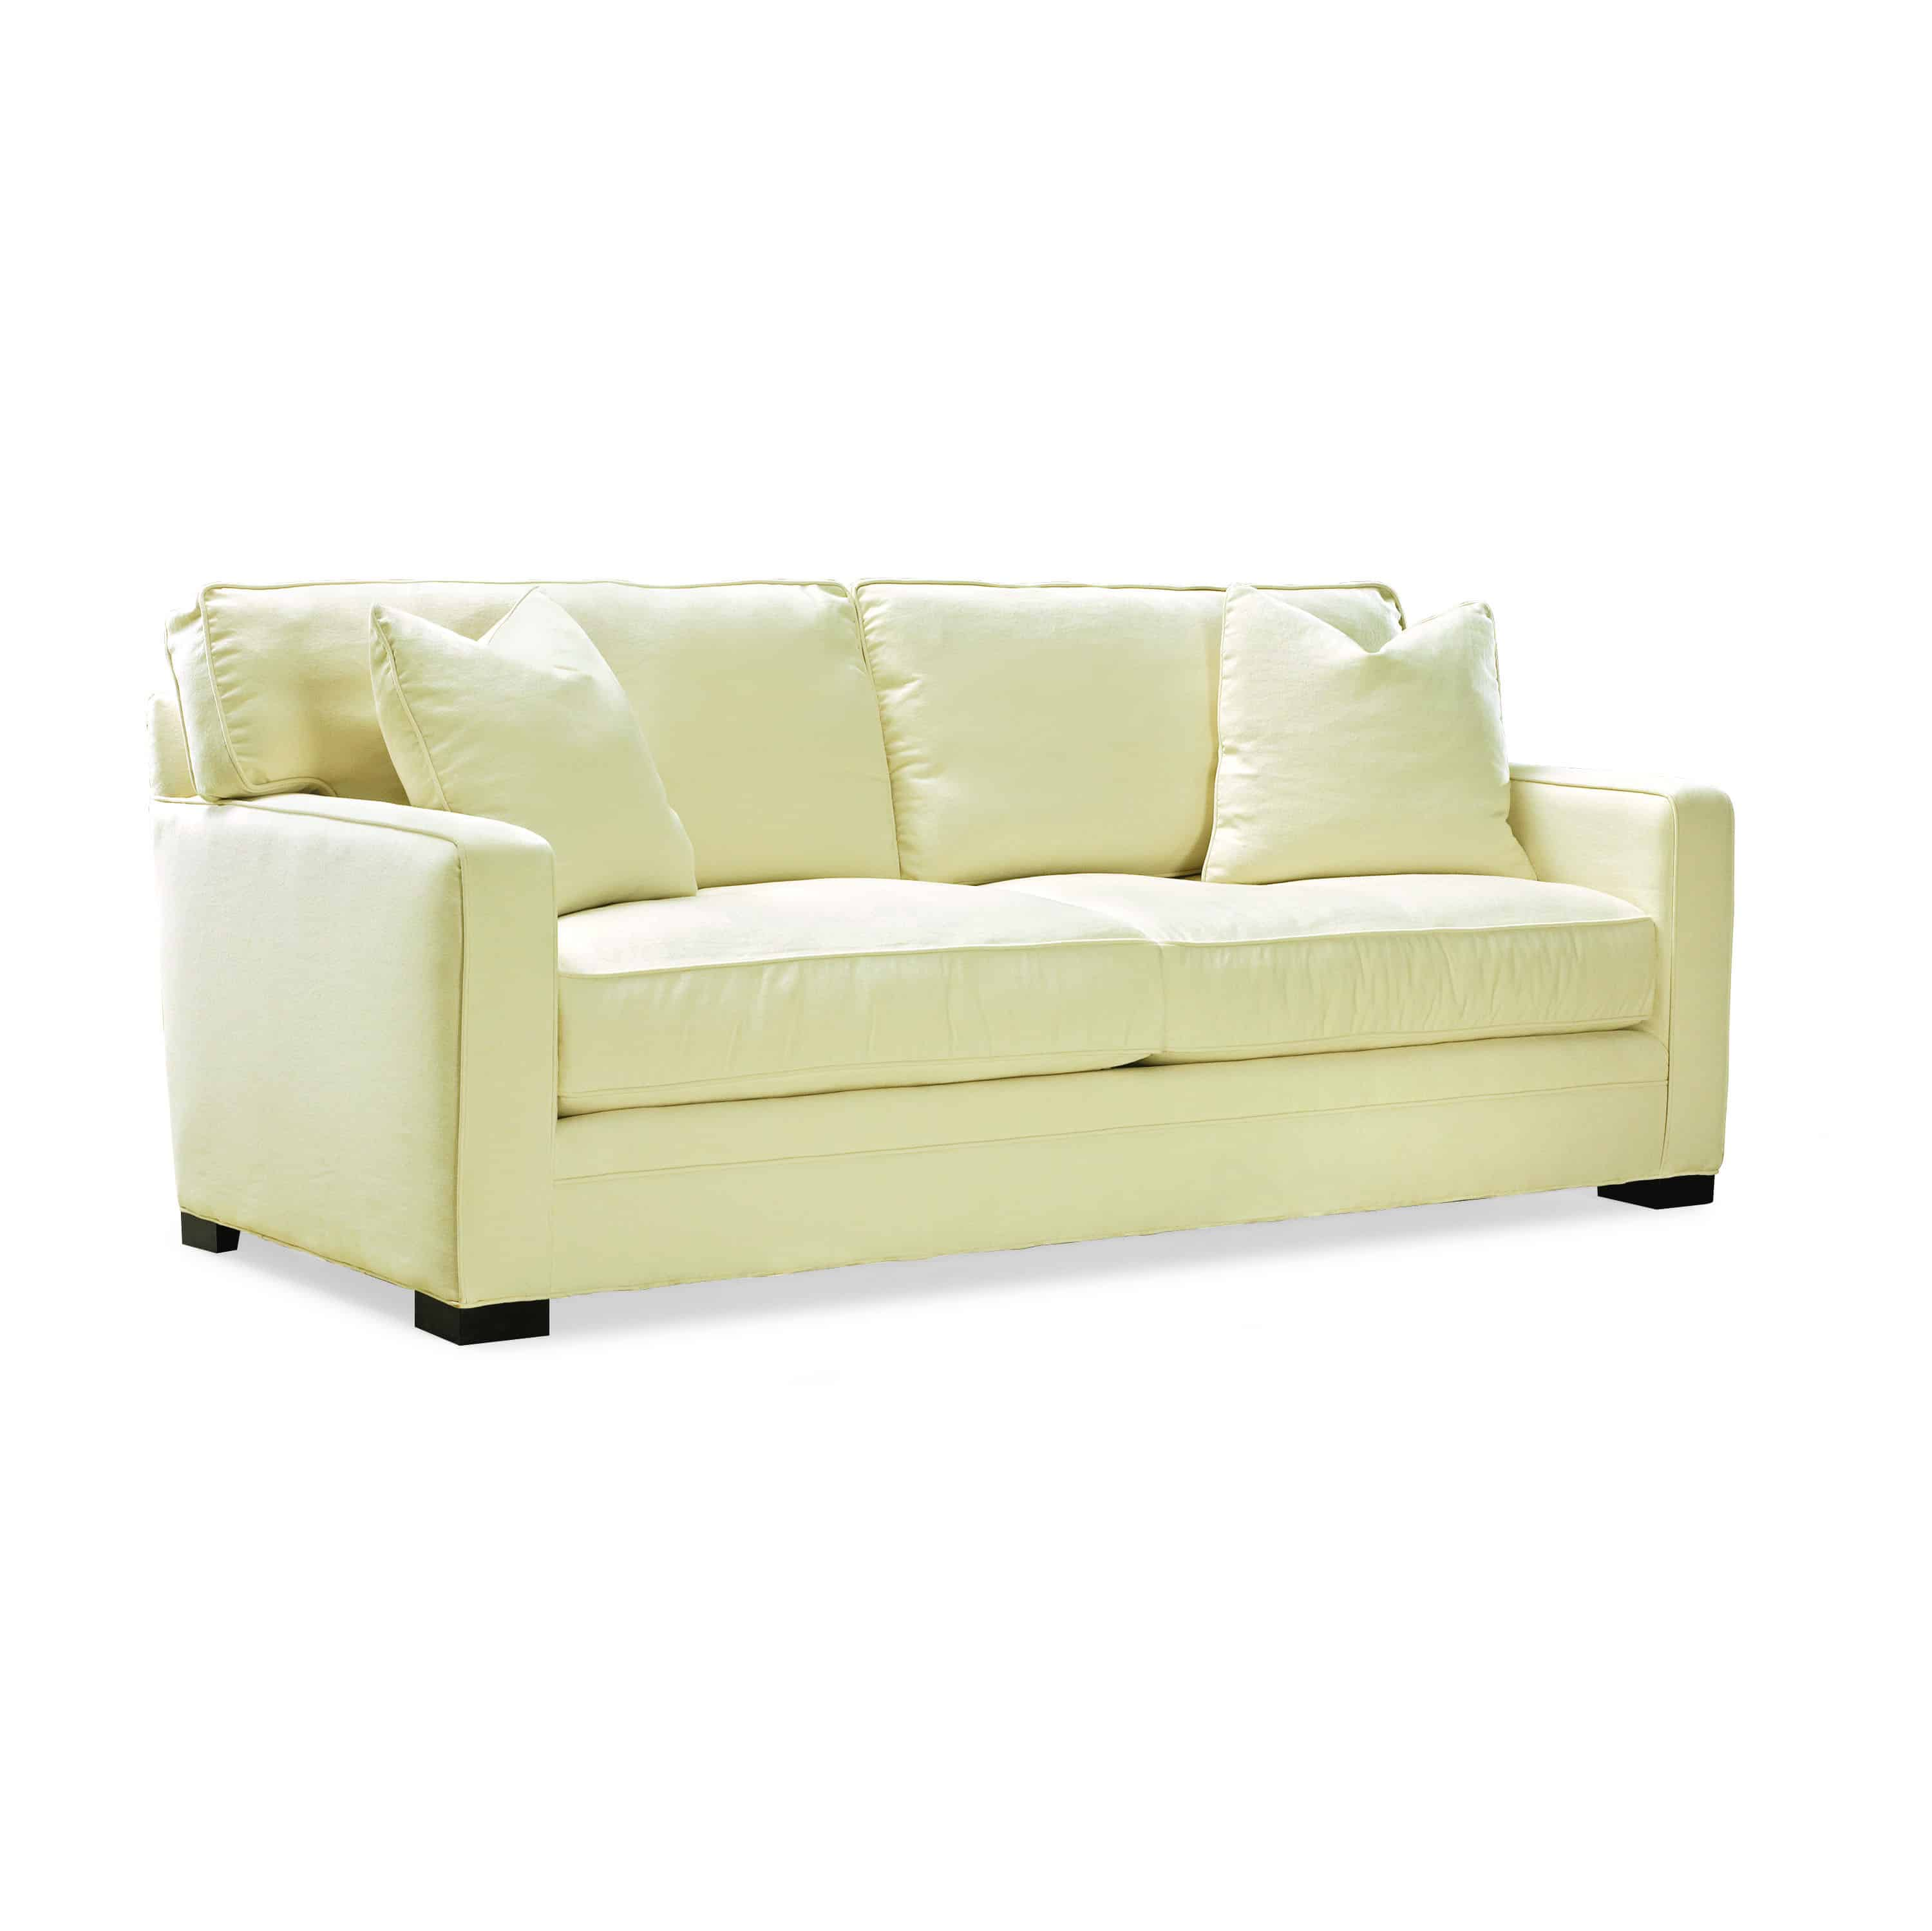 Astonishing Lee Queen Sleeper Sofa Caraccident5 Cool Chair Designs And Ideas Caraccident5Info